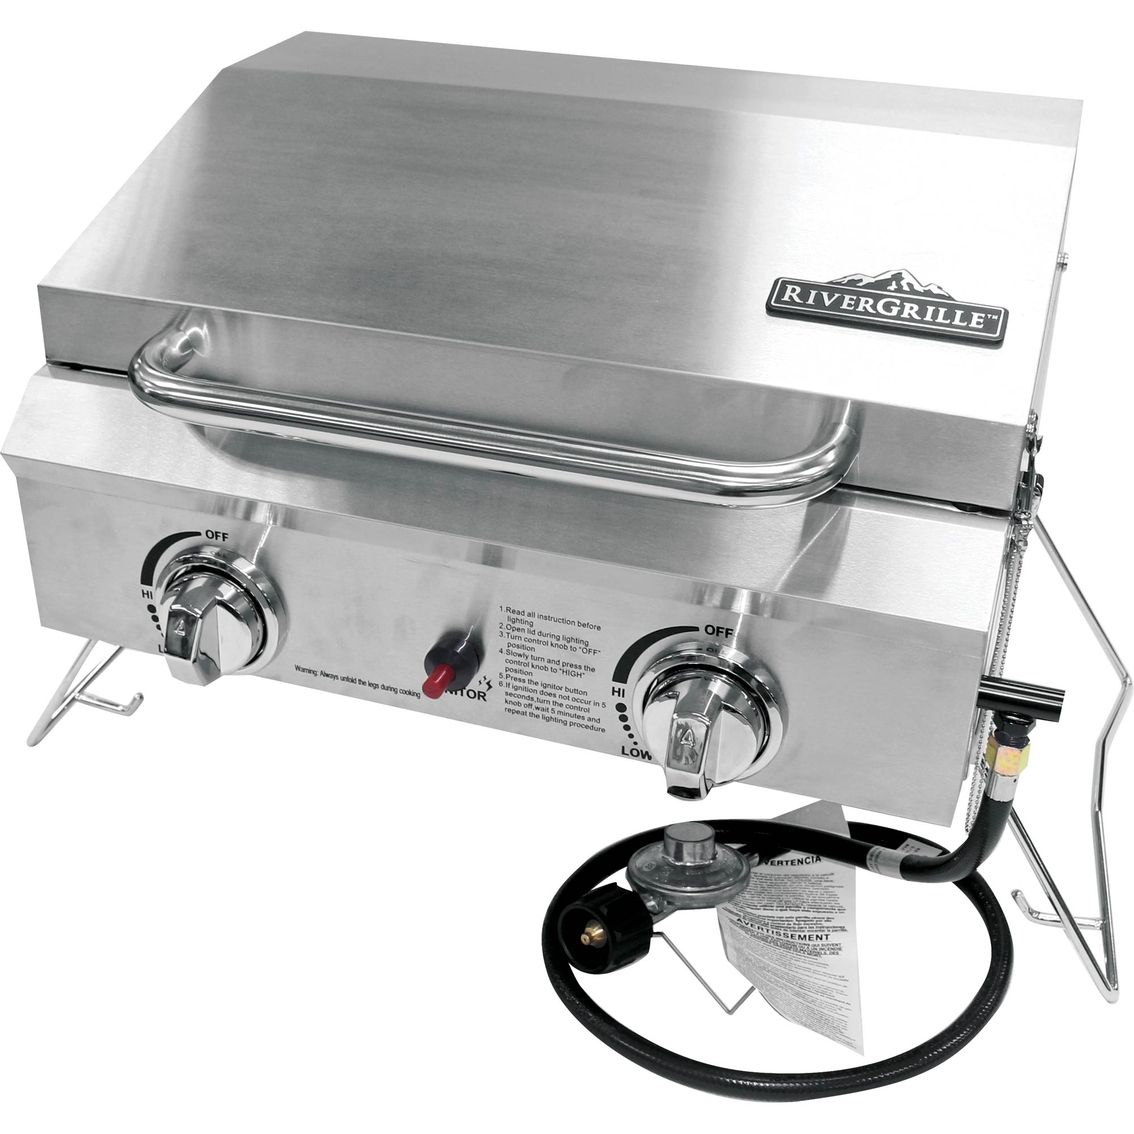 Rivergrille Portable 2 Burner Stainless Steel Gas Grill | Cooking | Gifts U0026  Food | Shop The Exchange